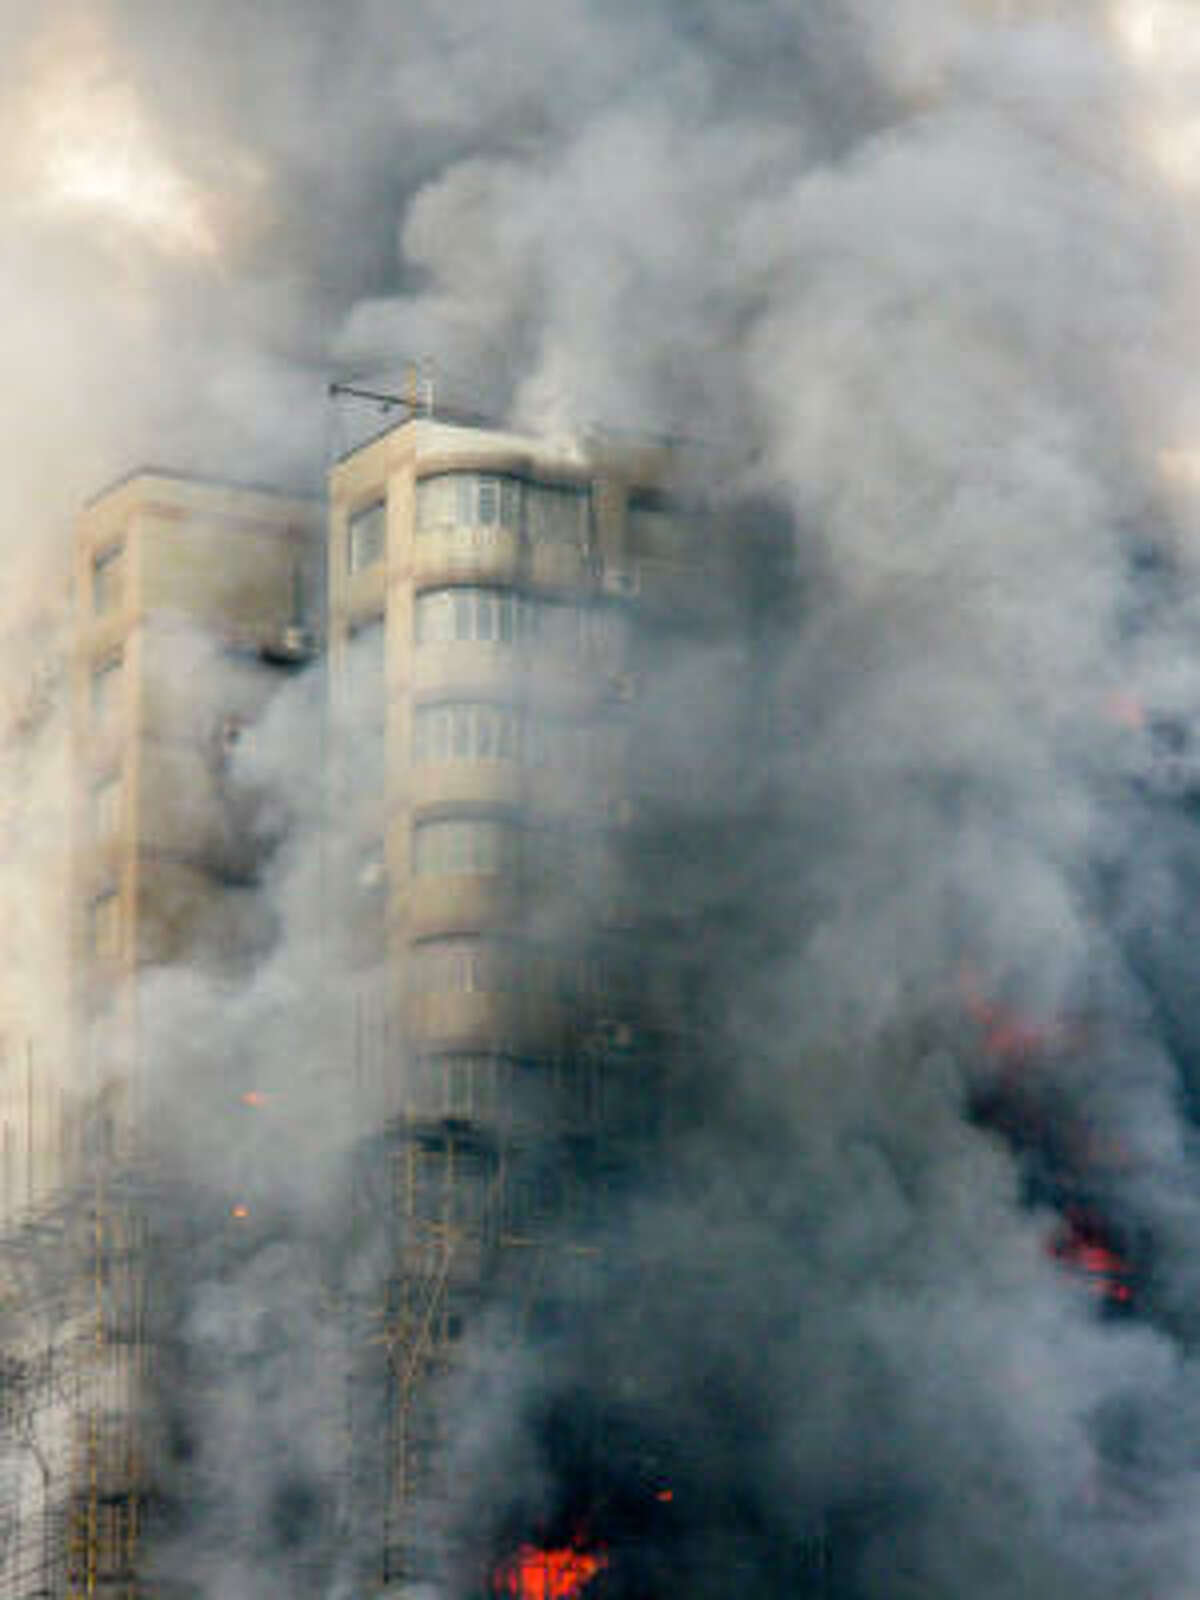 A 28-story apartment building that was under renovation was damaged by fire in the downtown area of Shanghai, east China, killed at least 53 people and left more than 70 hospitalized.